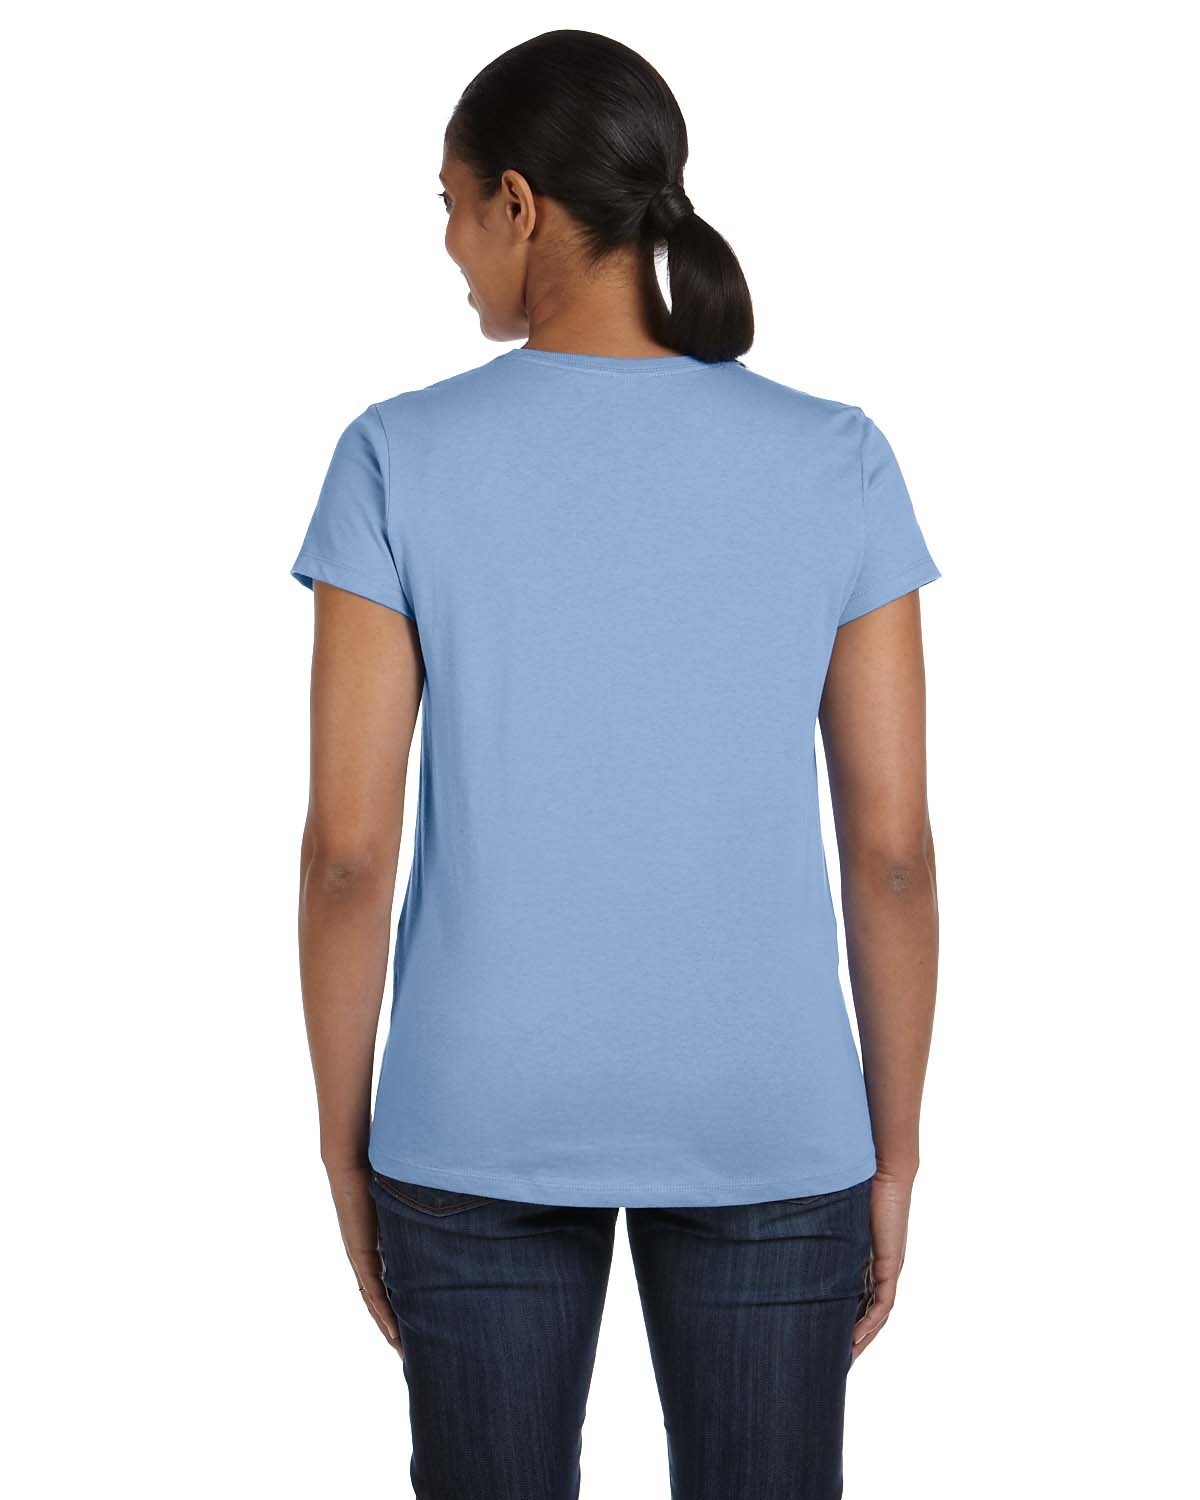 5680 Hanes LIGHT BLUE